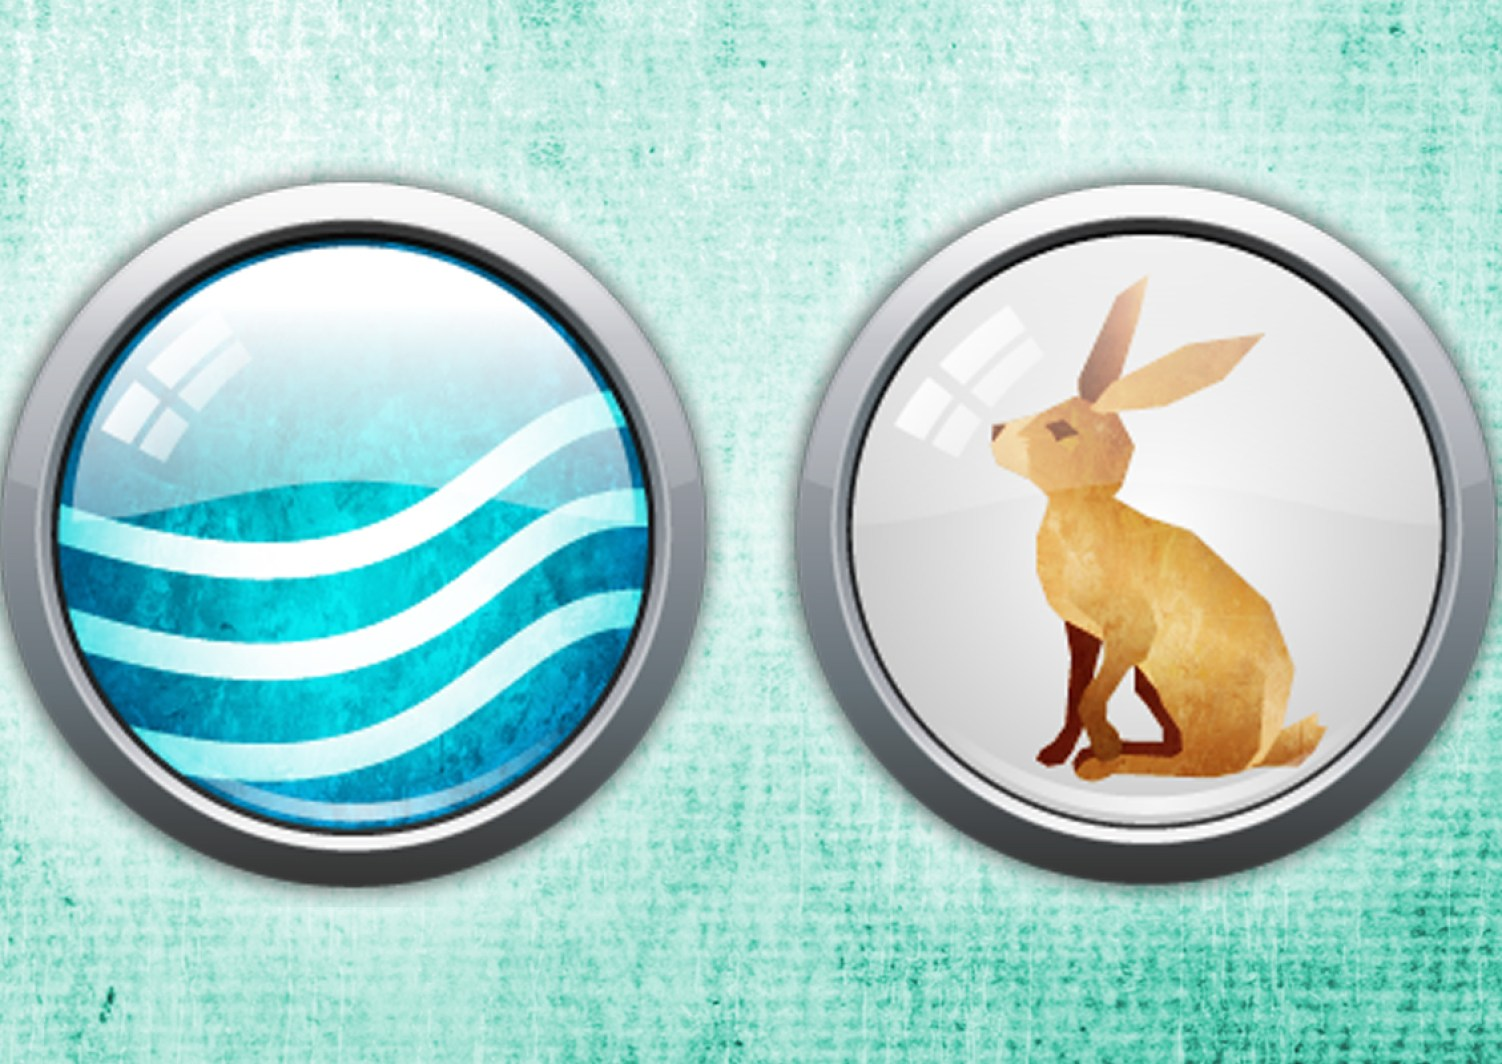 Chinese Zodiac Animal What Is A Water Rabbit And What Year Is It